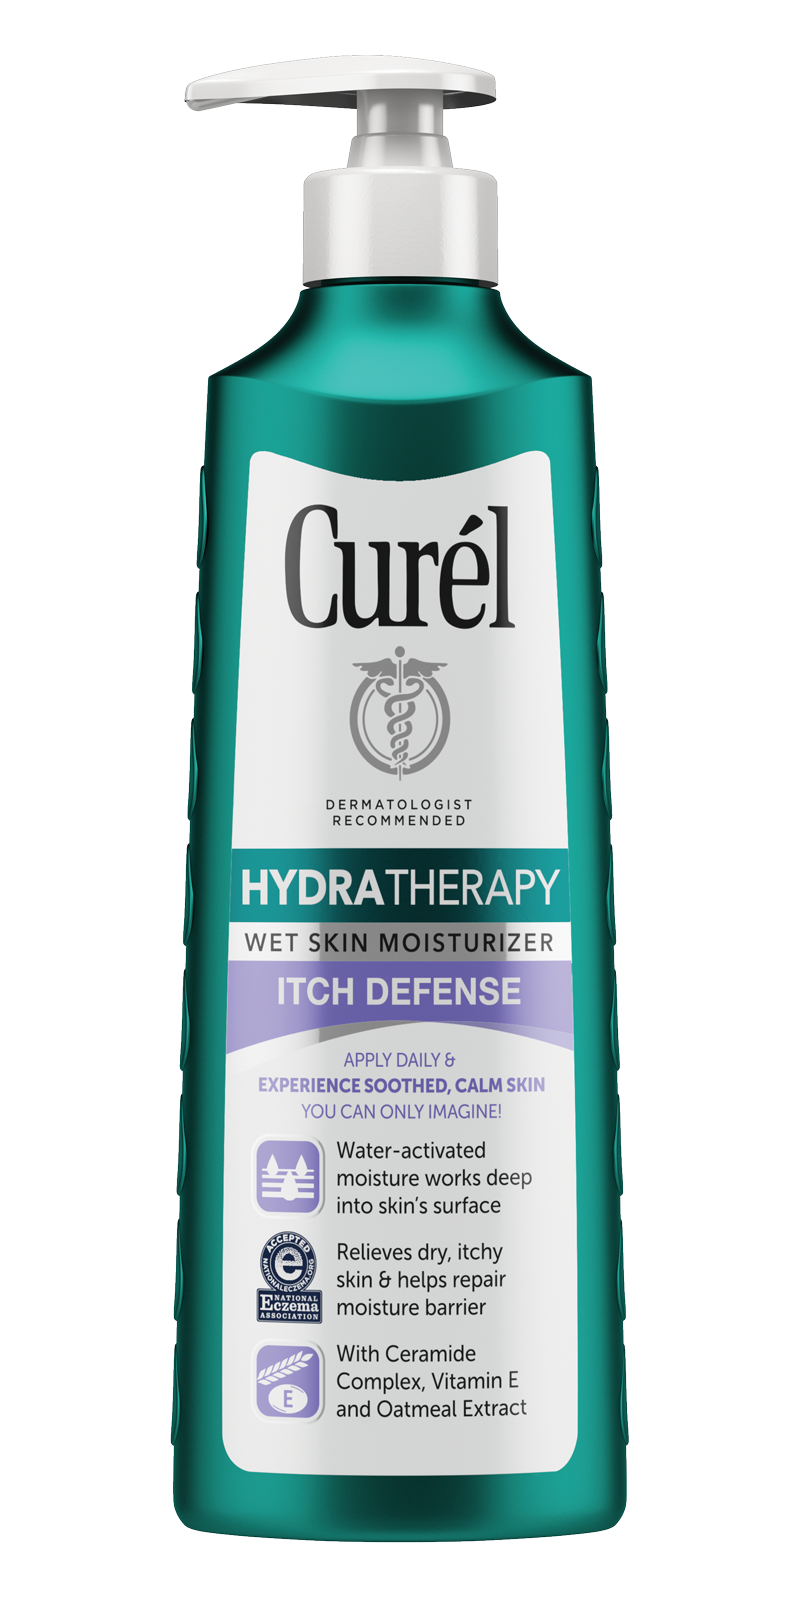 Image of Hydra Therapy Itch Defense Wet Skin Moisturizer  packaging